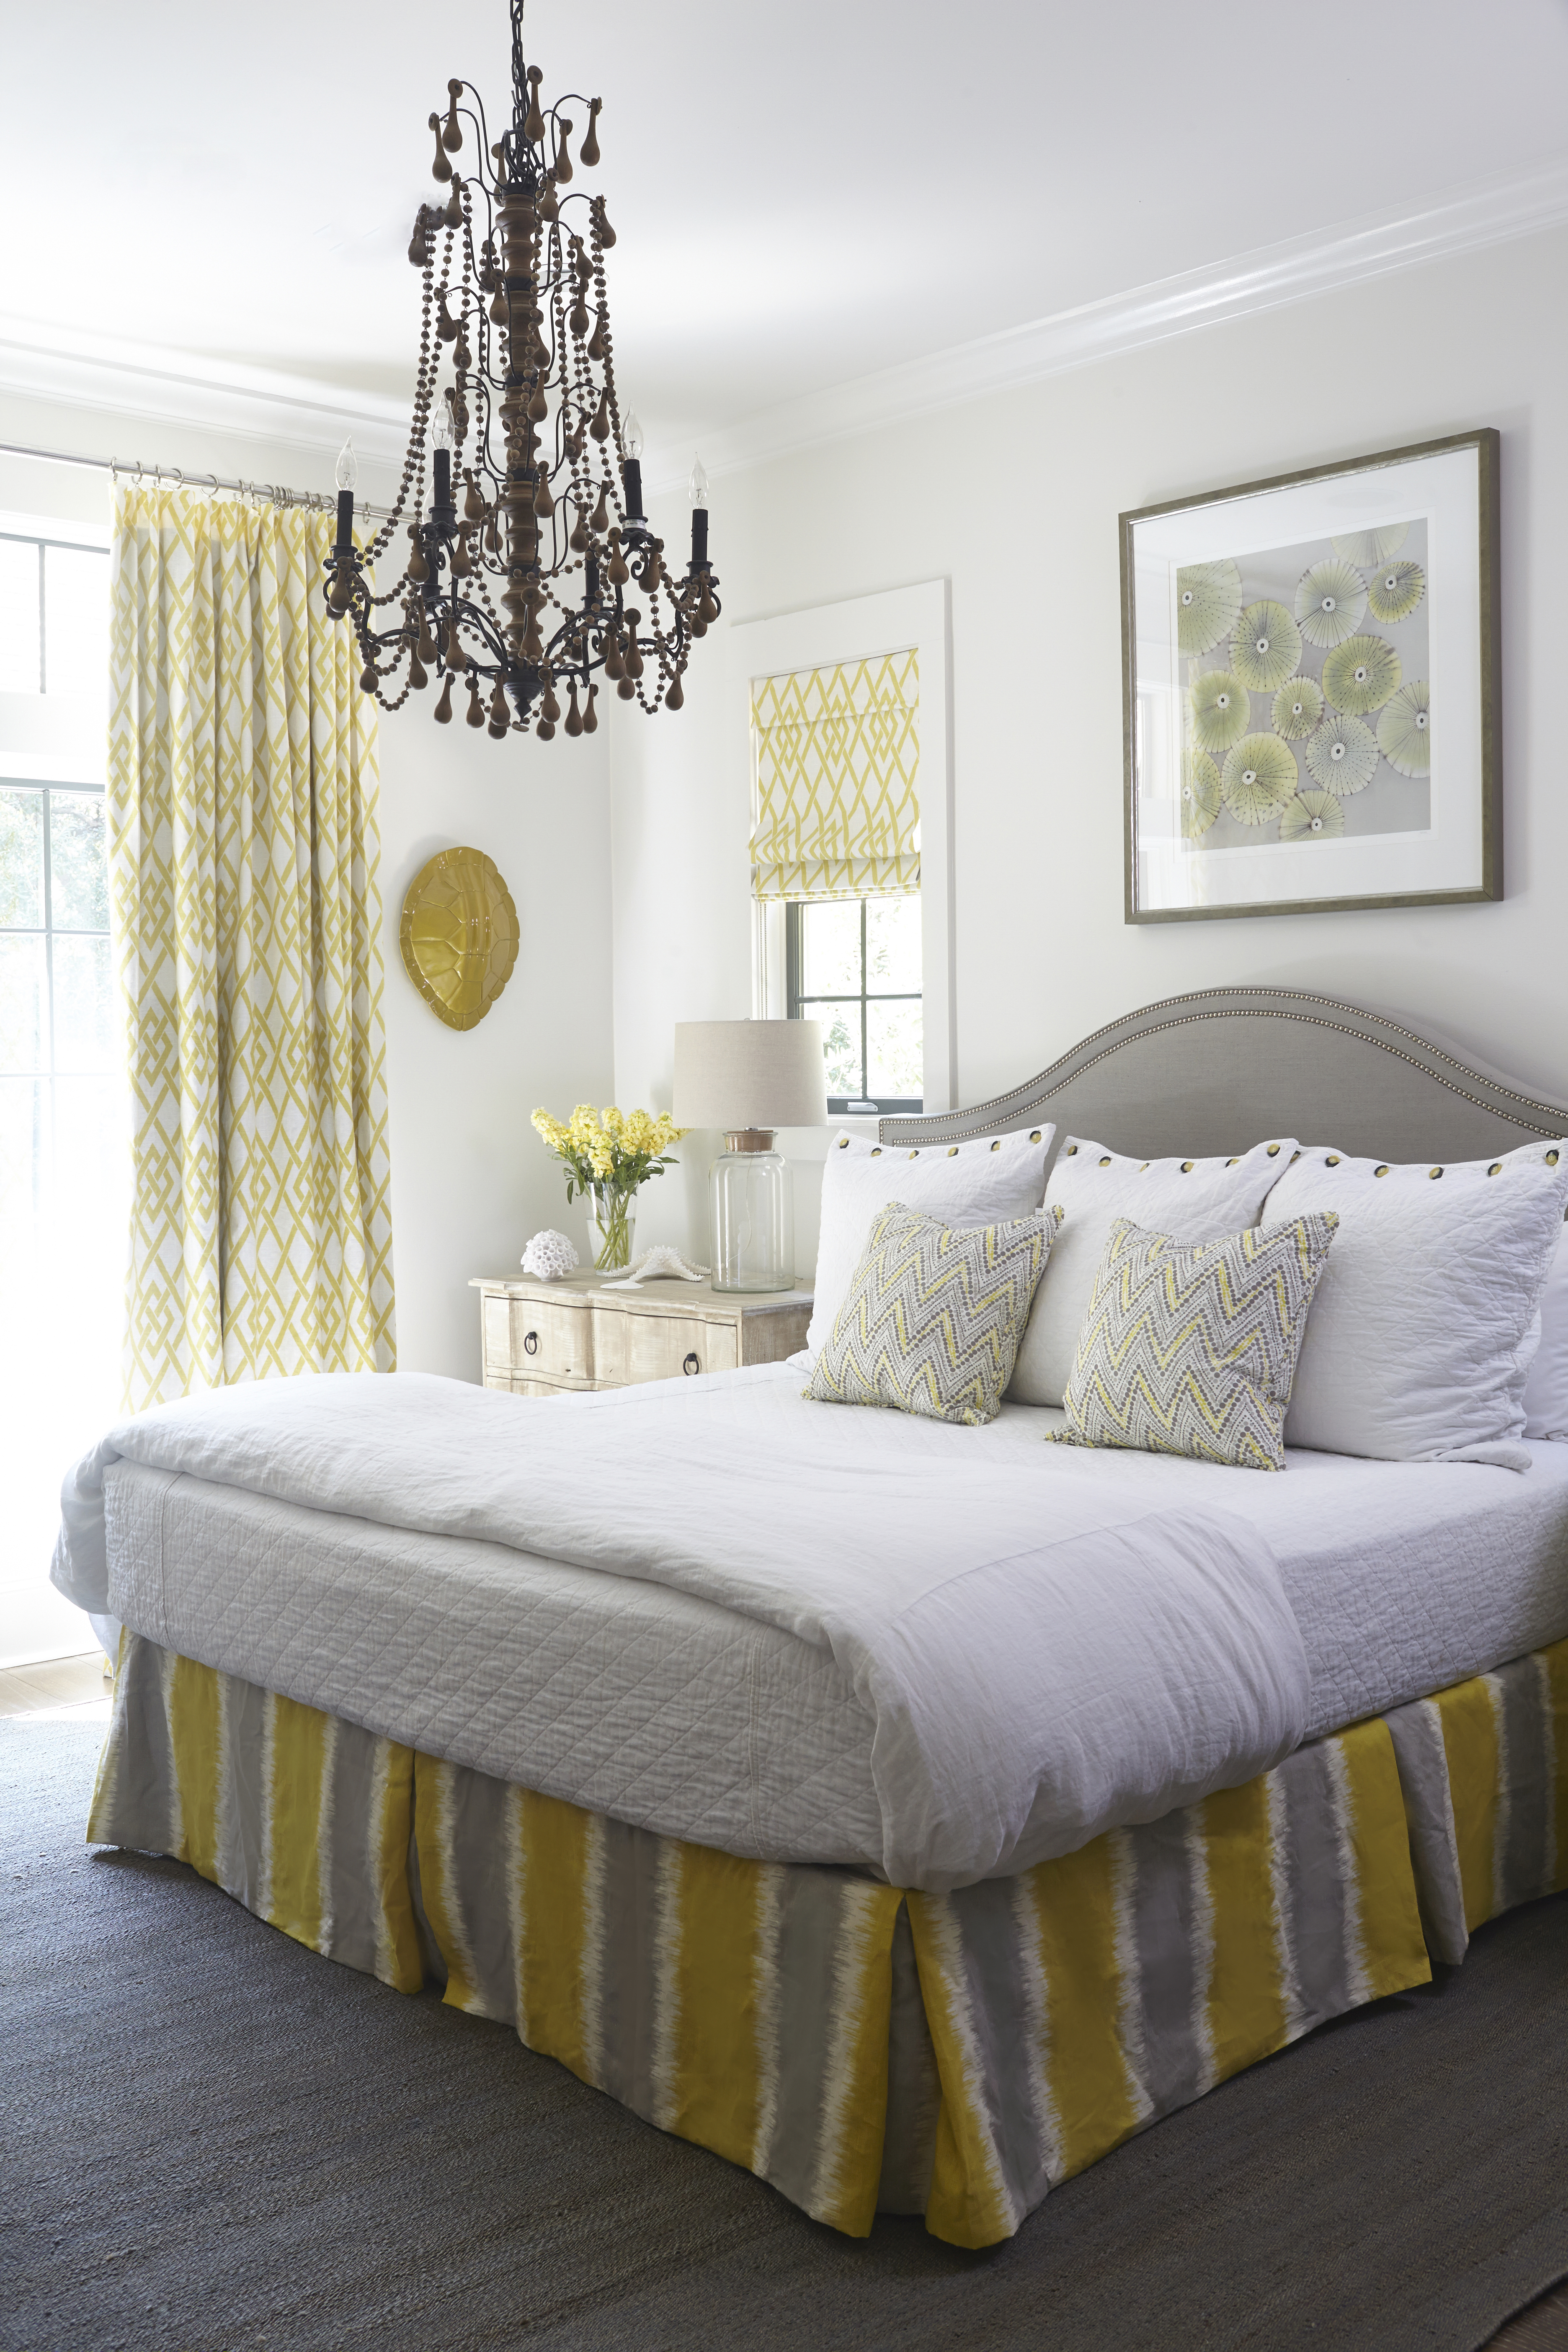 Beds For 13 Year Olds a little sunshine for your monday | our blog